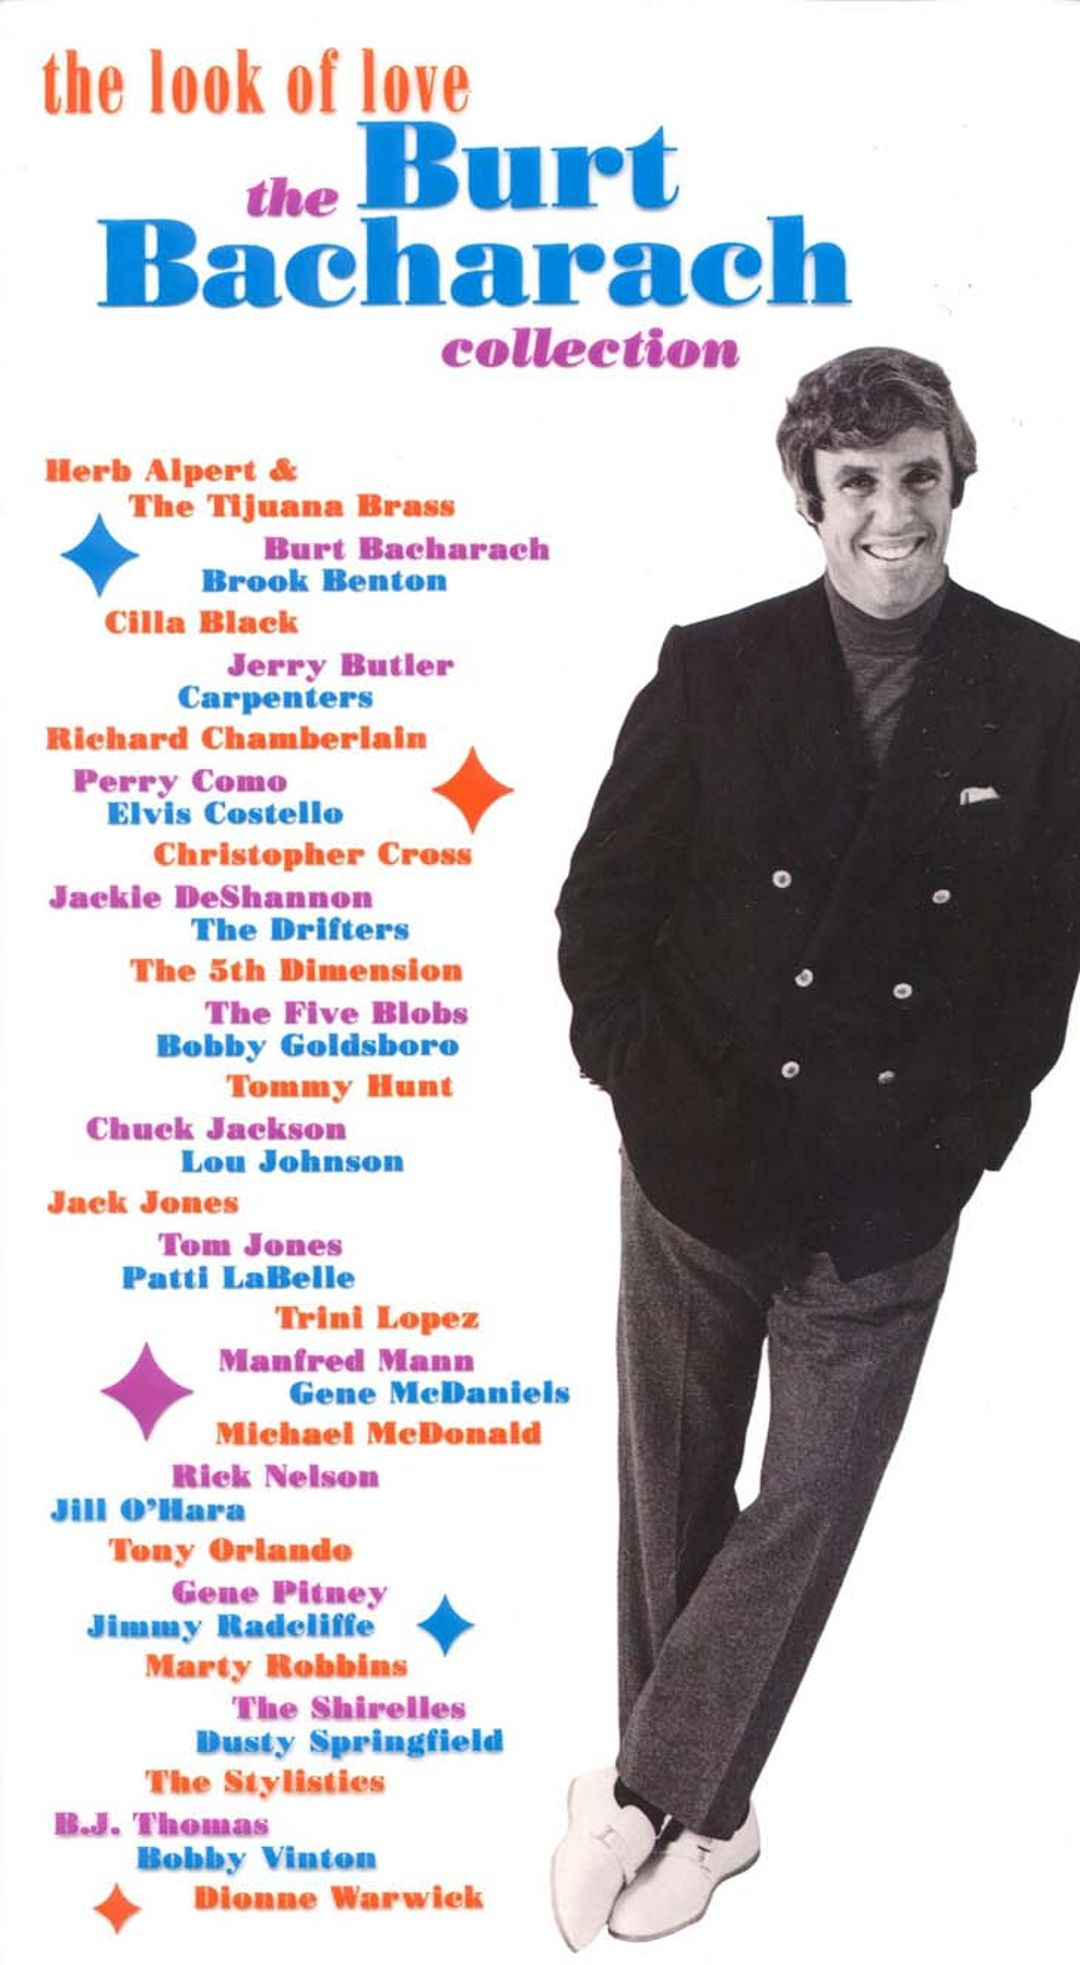 Book Of Love Album Cover : The look of love burt bacharach collection